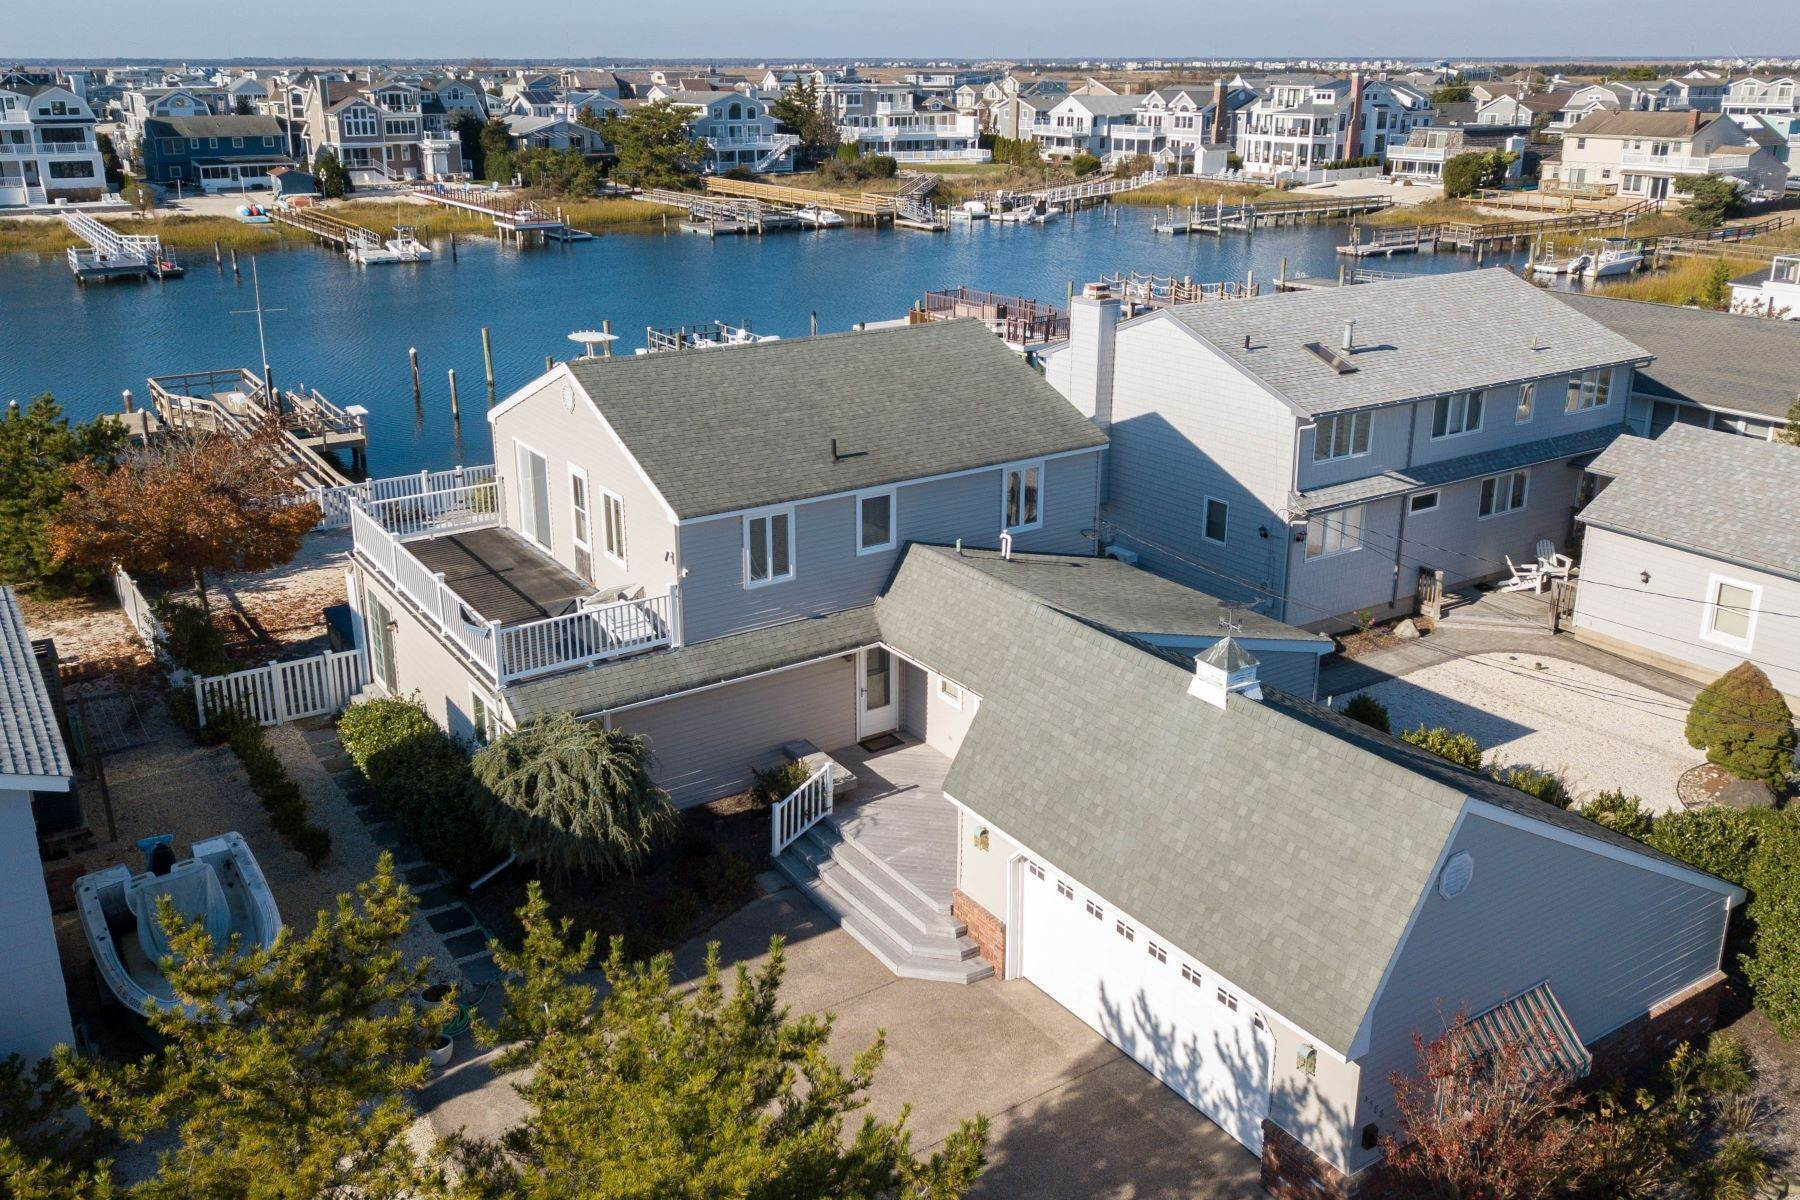 Single Family Homes for Sale at Expansive Bayfront 4388 Ocean Drive, Avalon, New Jersey 08202 United States